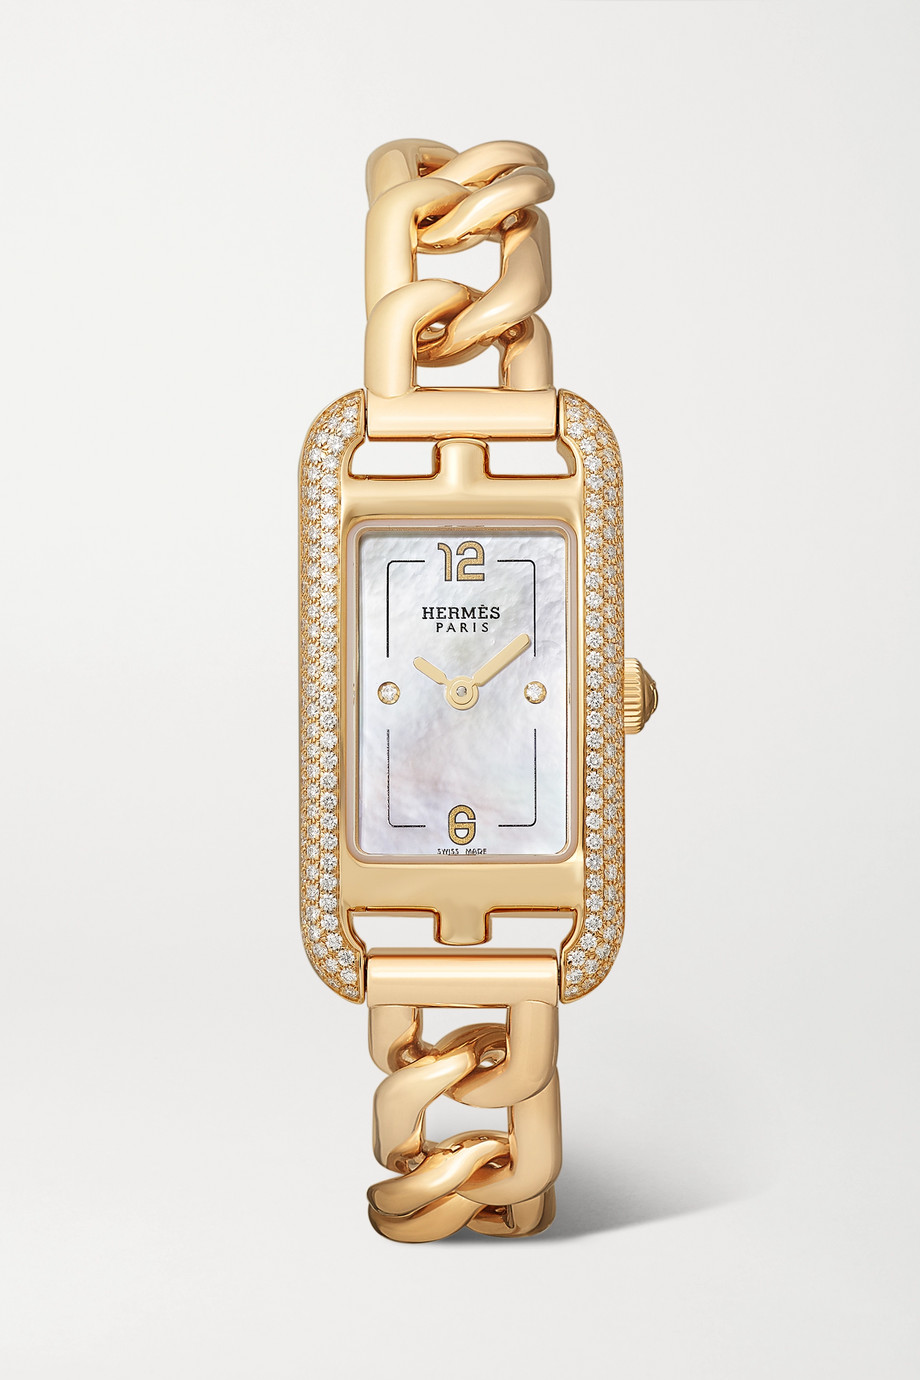 Hermès Timepieces Nantucket 17mm very small 18-karat rose gold, diamond and mother-of-pearl watch